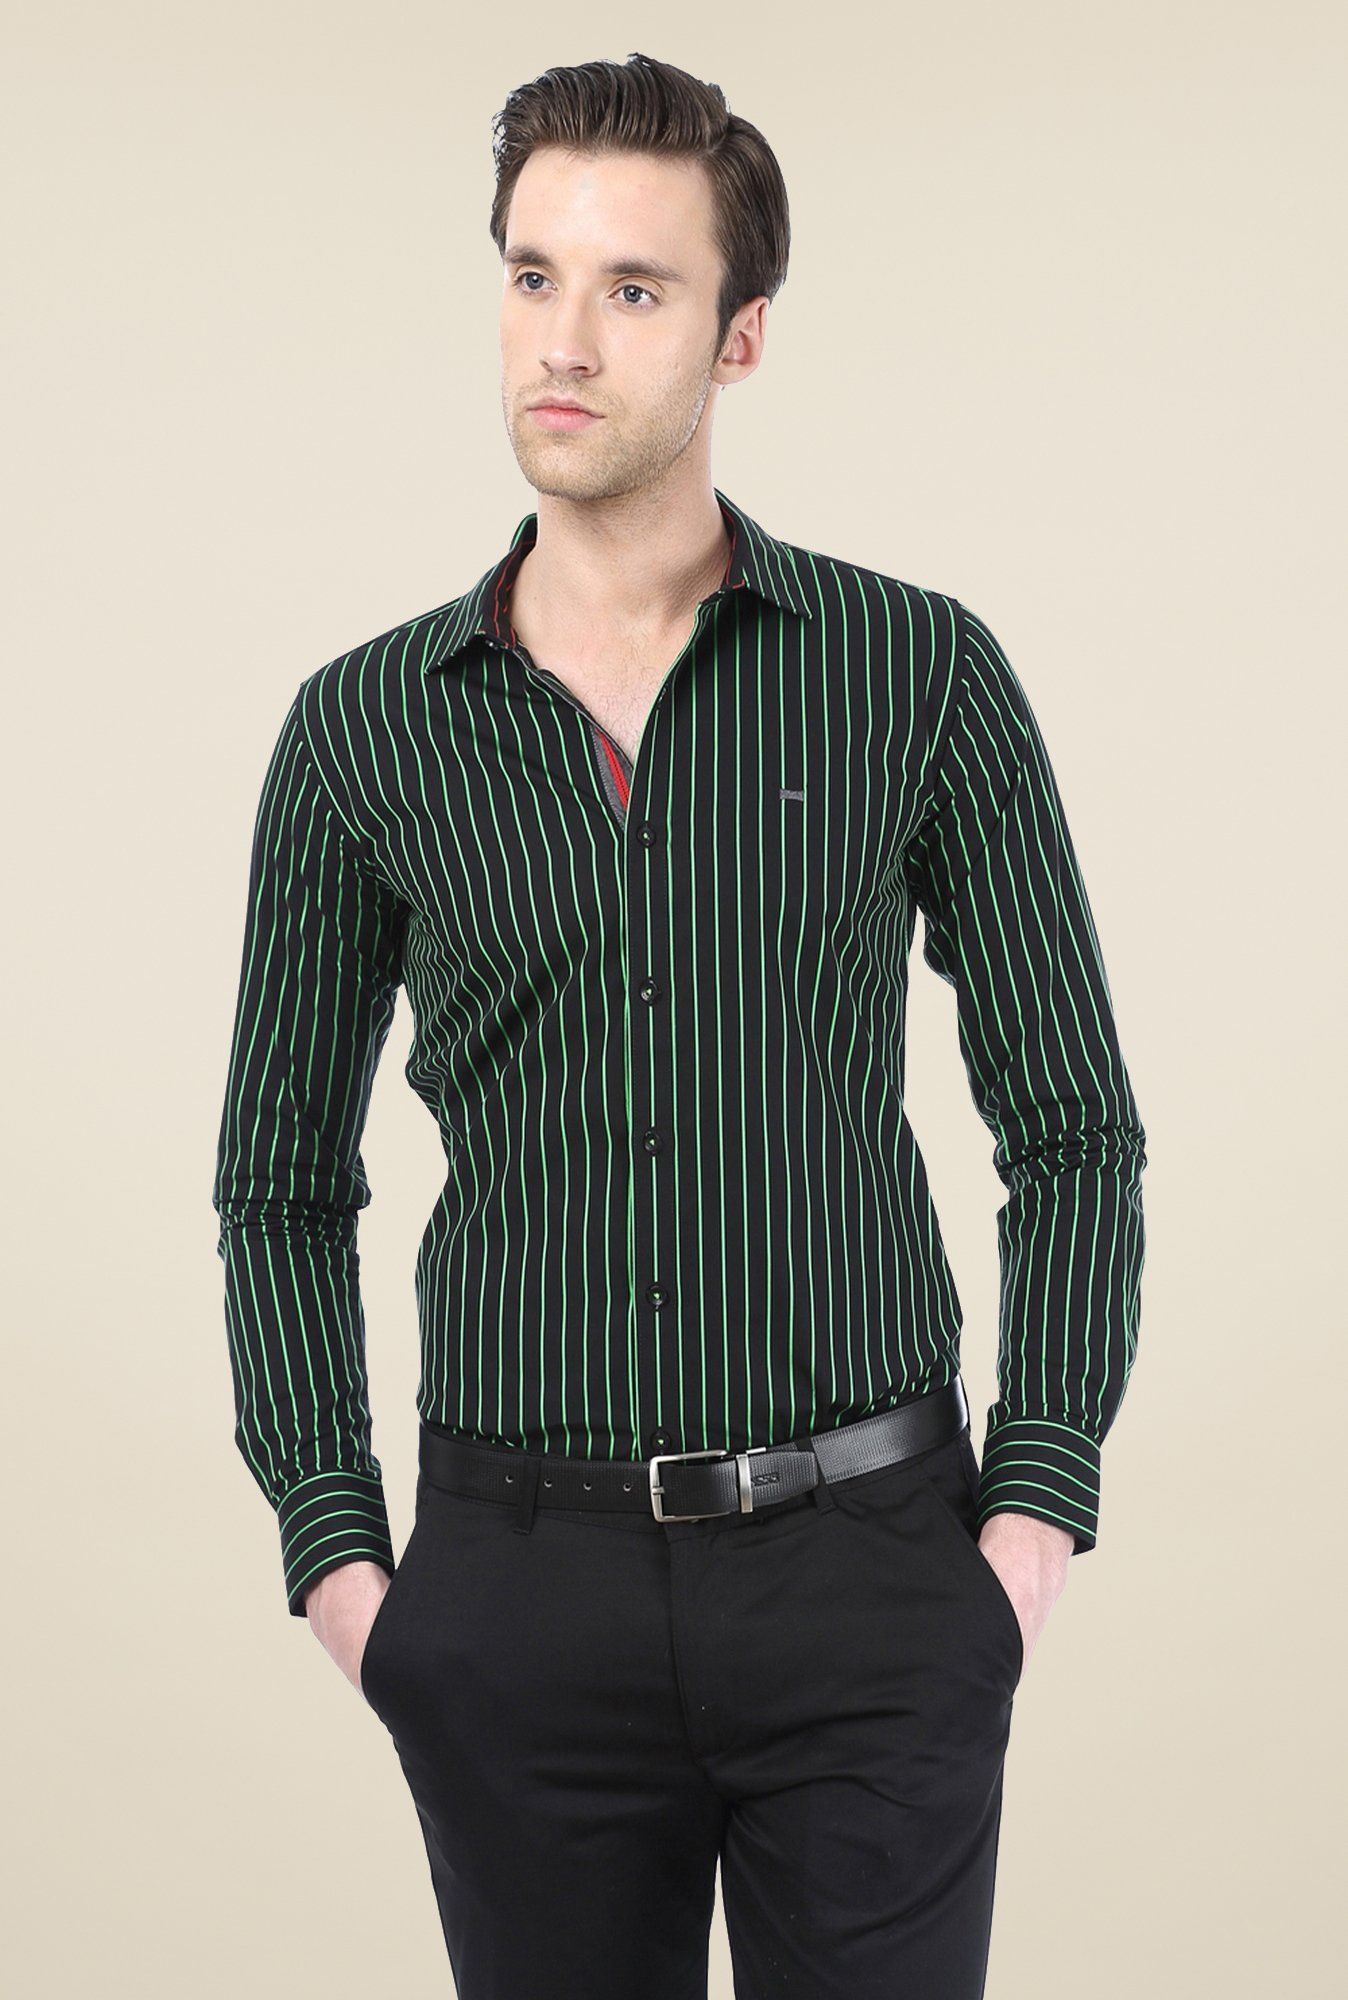 Basics Black Striped Shirt